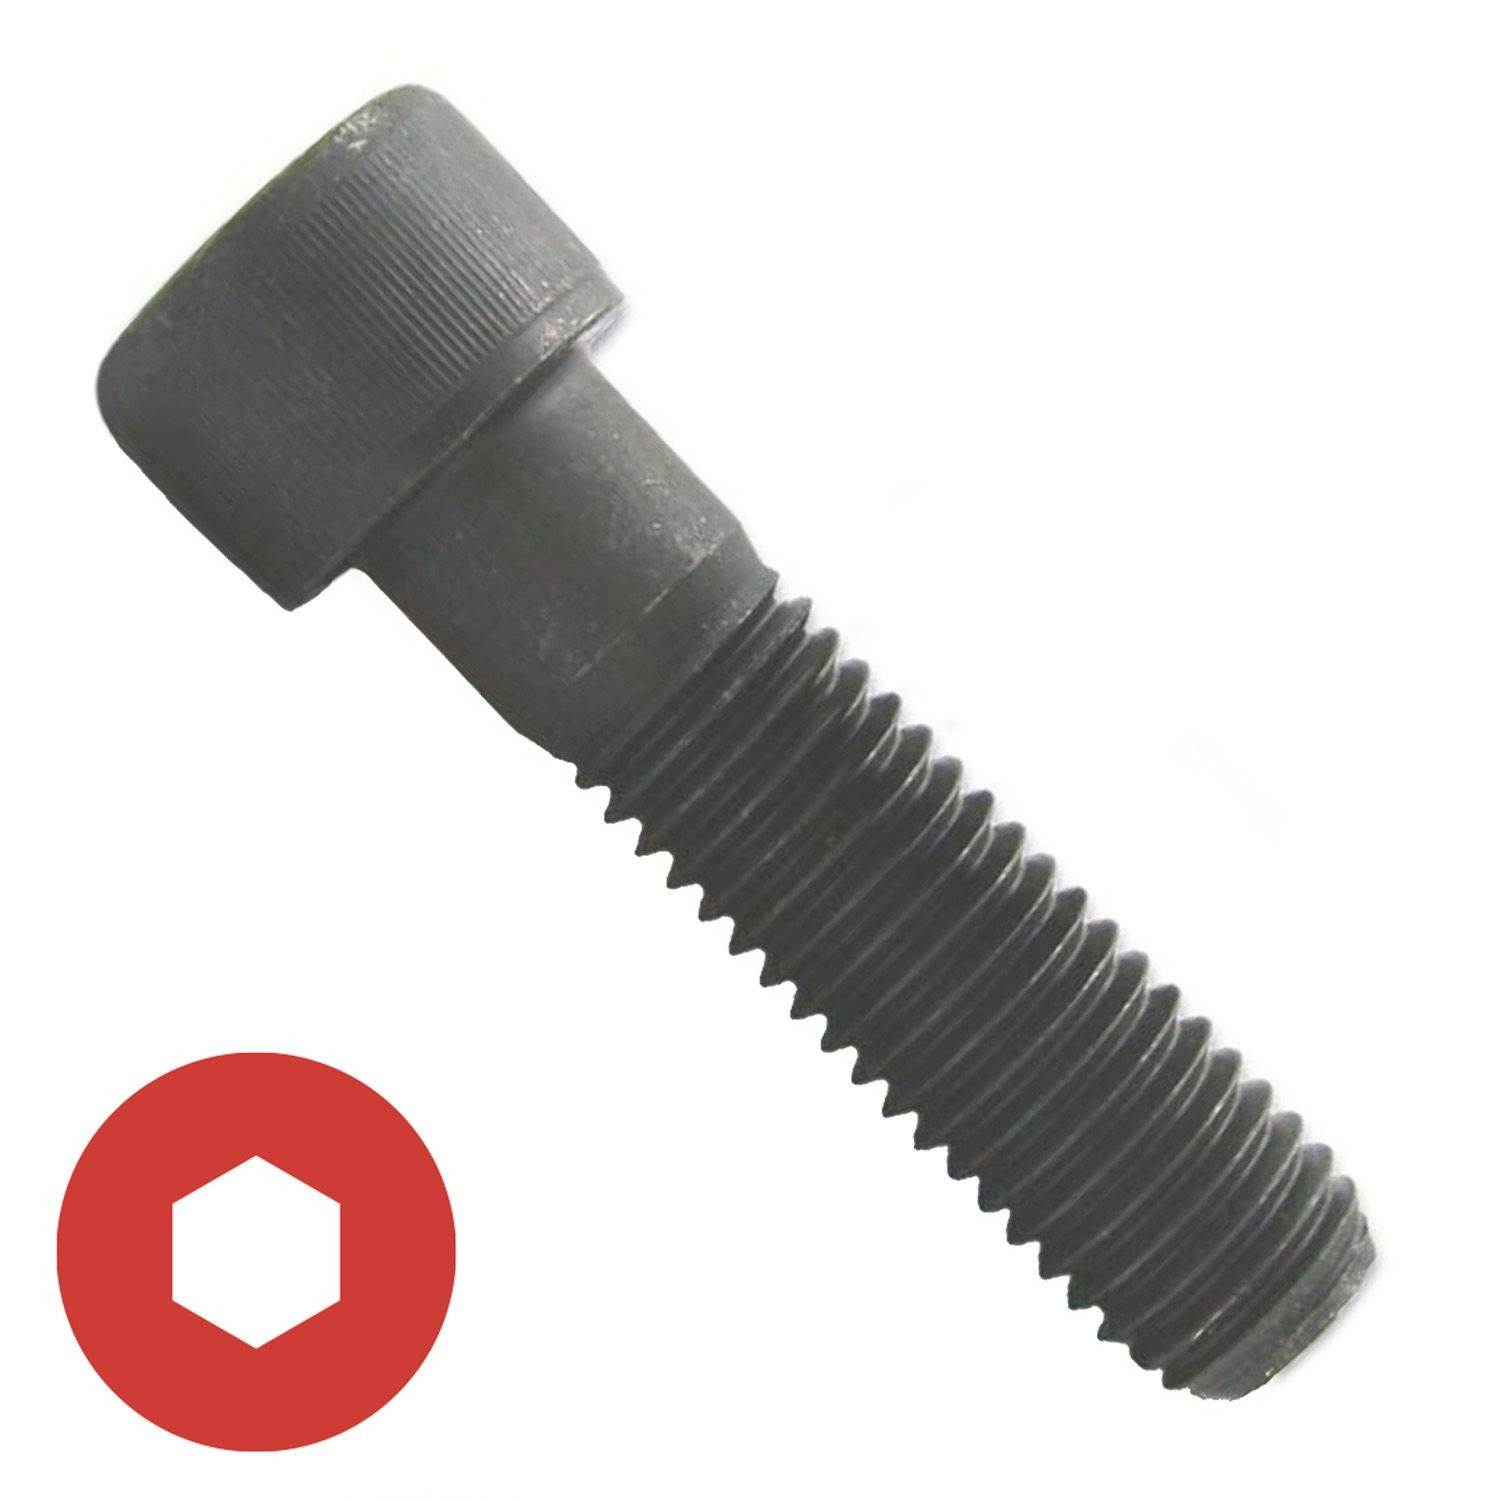 "#10-24 x 1/4"" Socket Head Cap Screw"